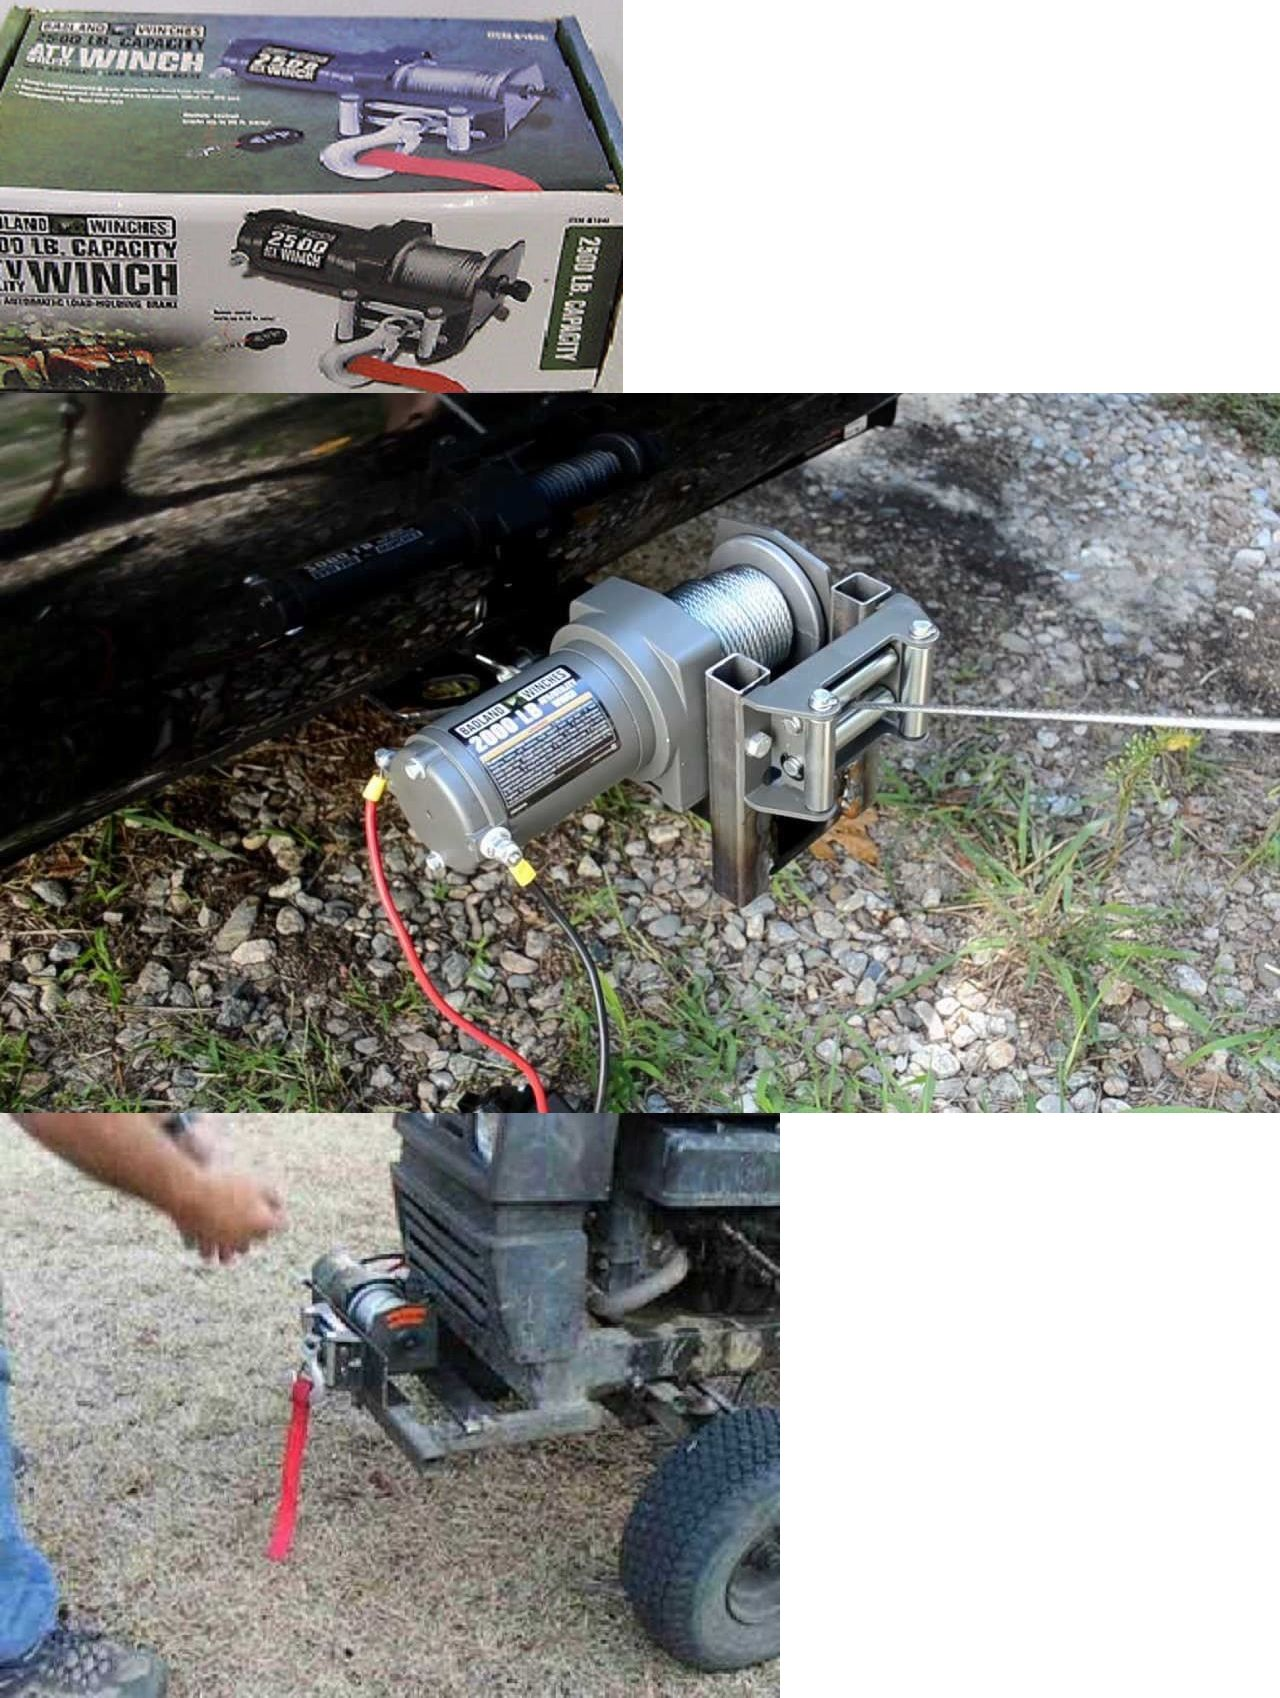 Winches 66798 2500 Lb 12v Atv Utility Electric Winch With Wireless Remote Control New Buy It Now Only 89 99 On Eba Electric Winch Remote Control Winch